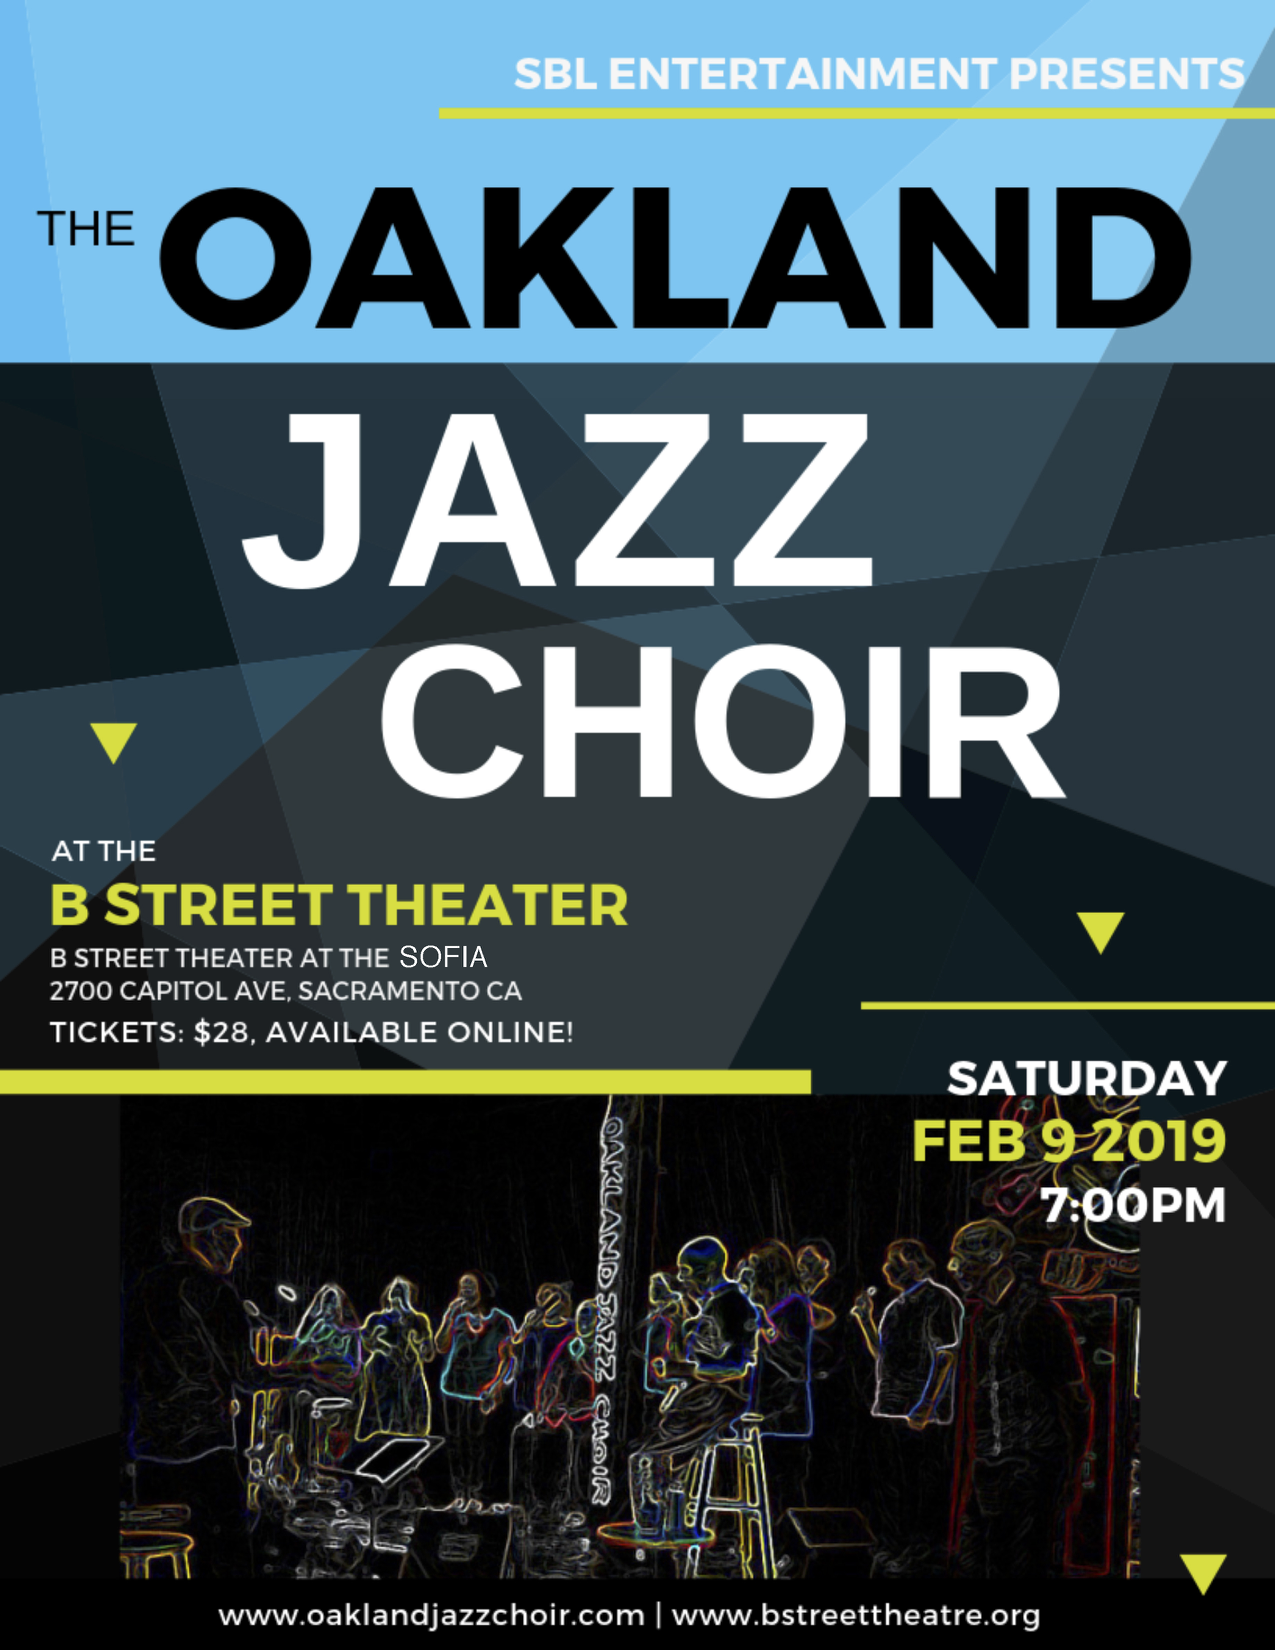 Oakland Jazz Choir at the B Street Theater Sacramento: February 9, 2019 at 7pm